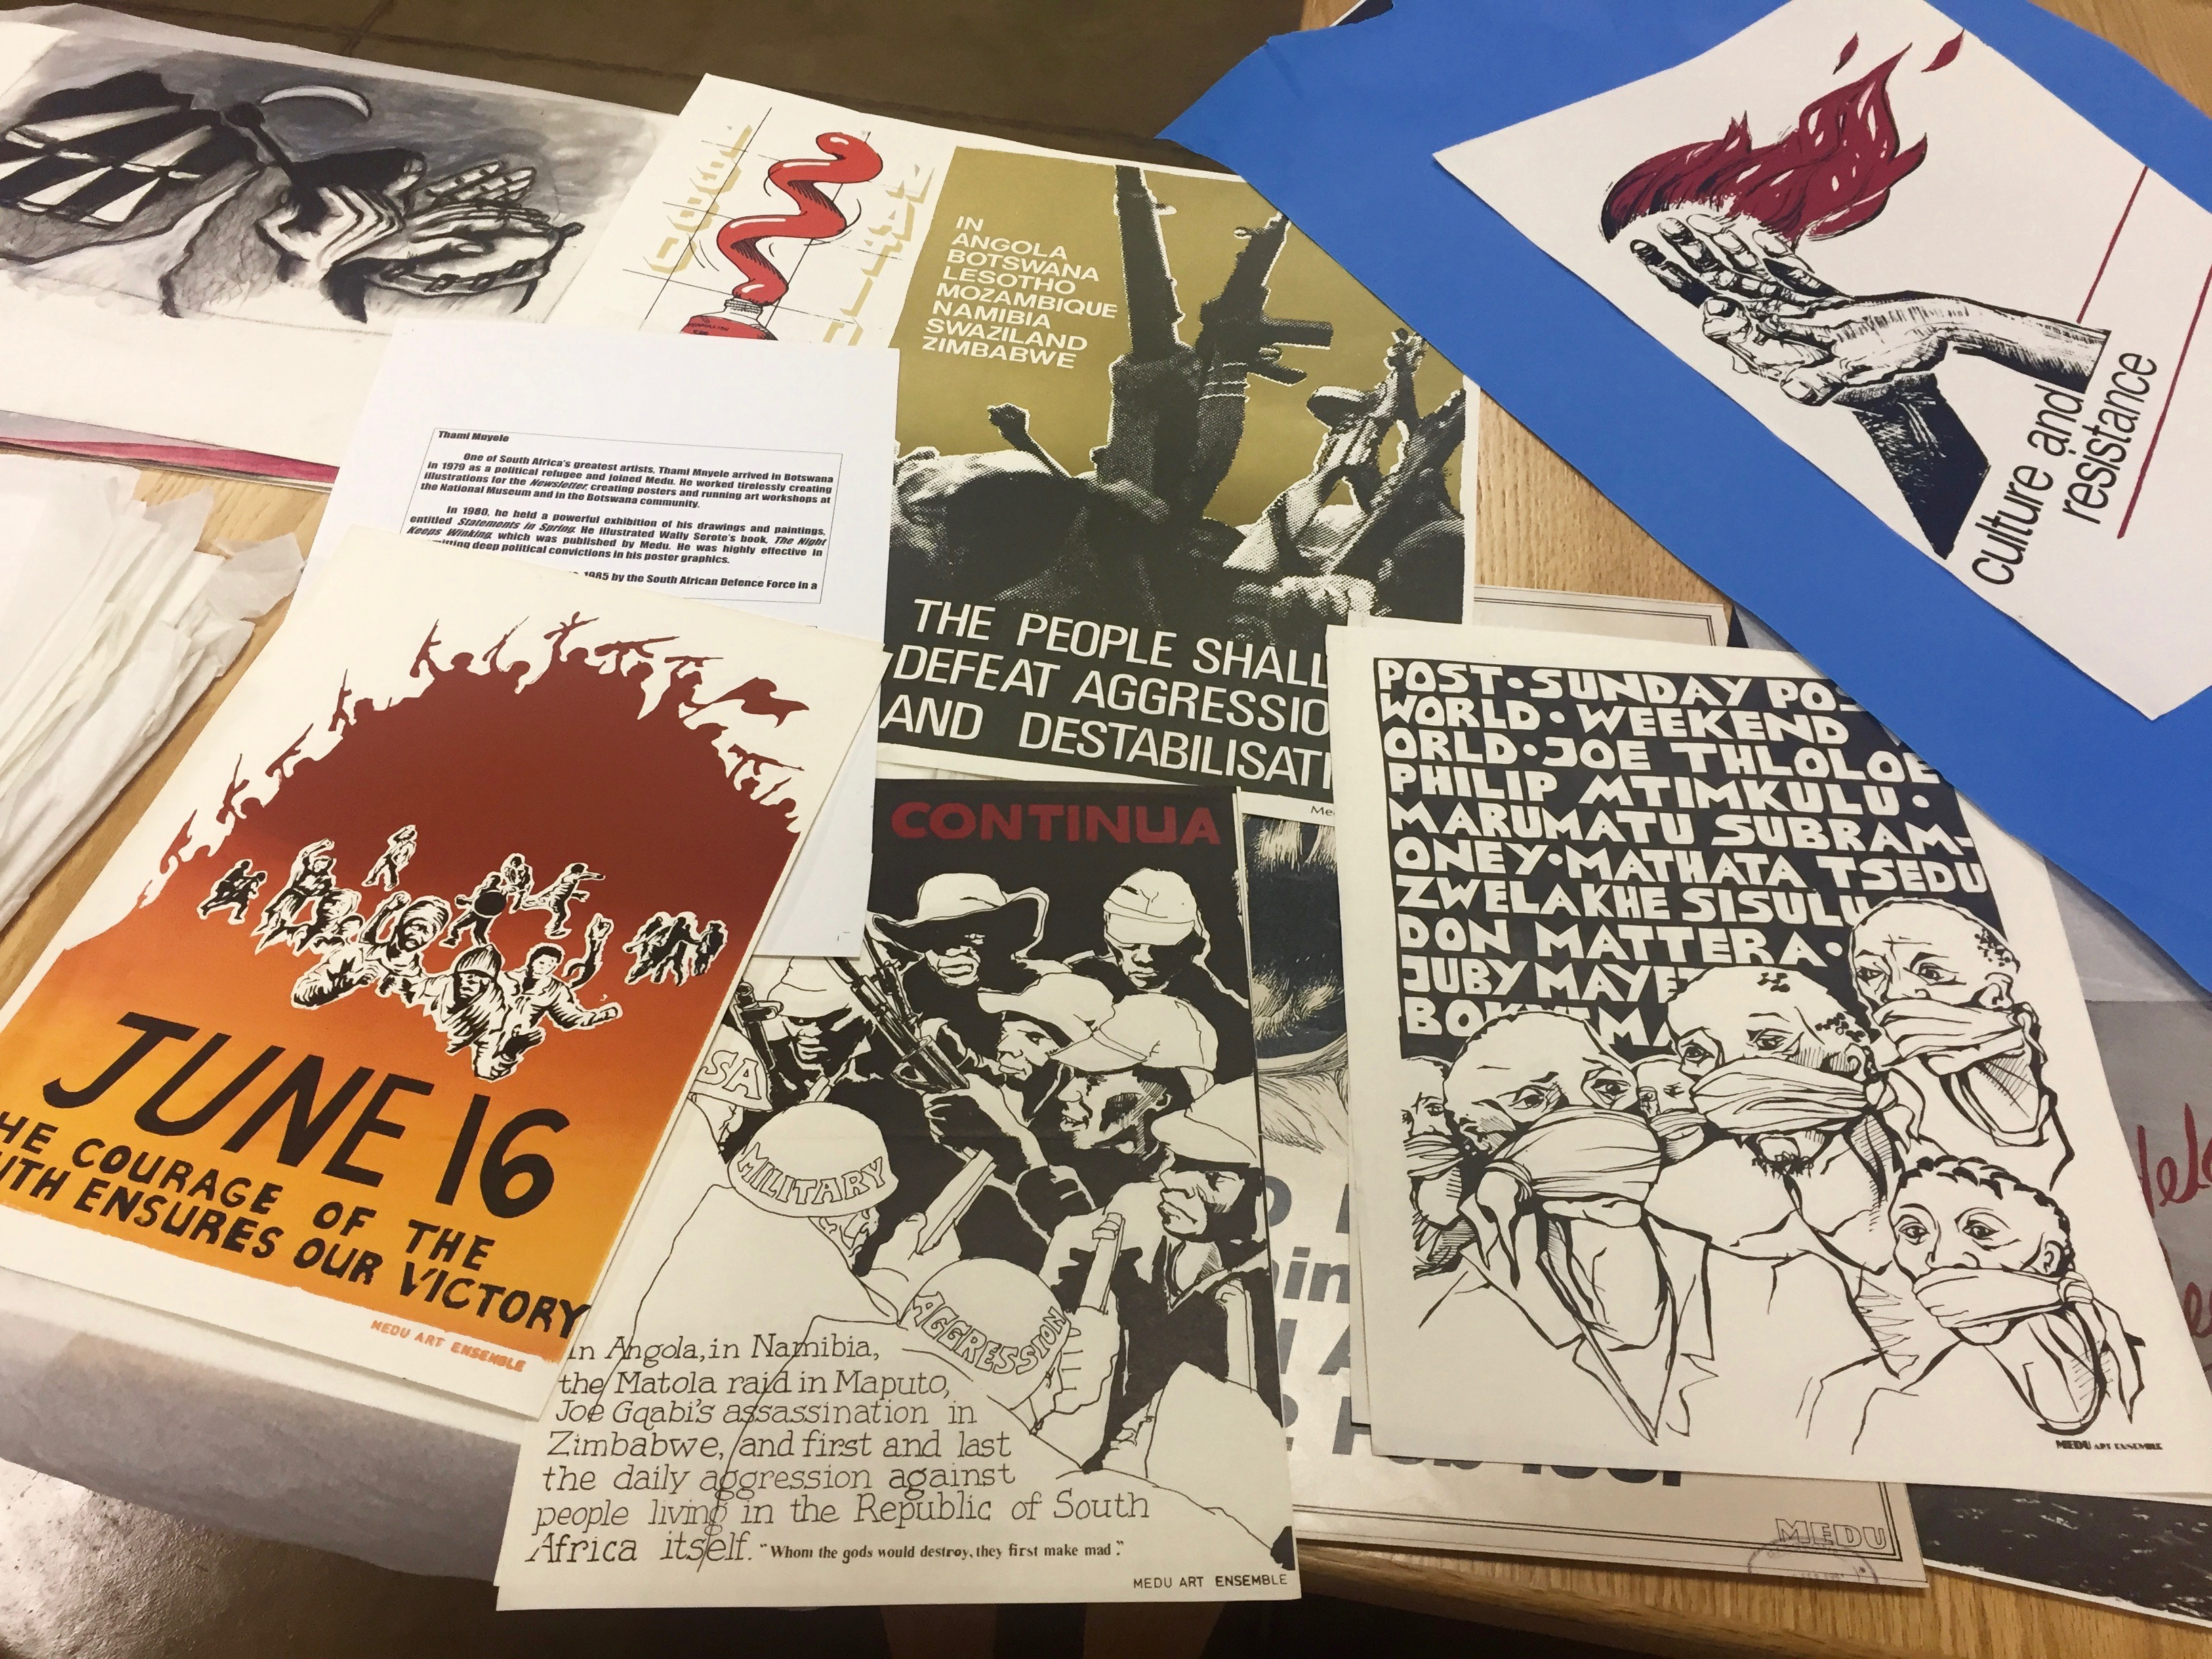 Collection of posters for protests in support of human rights